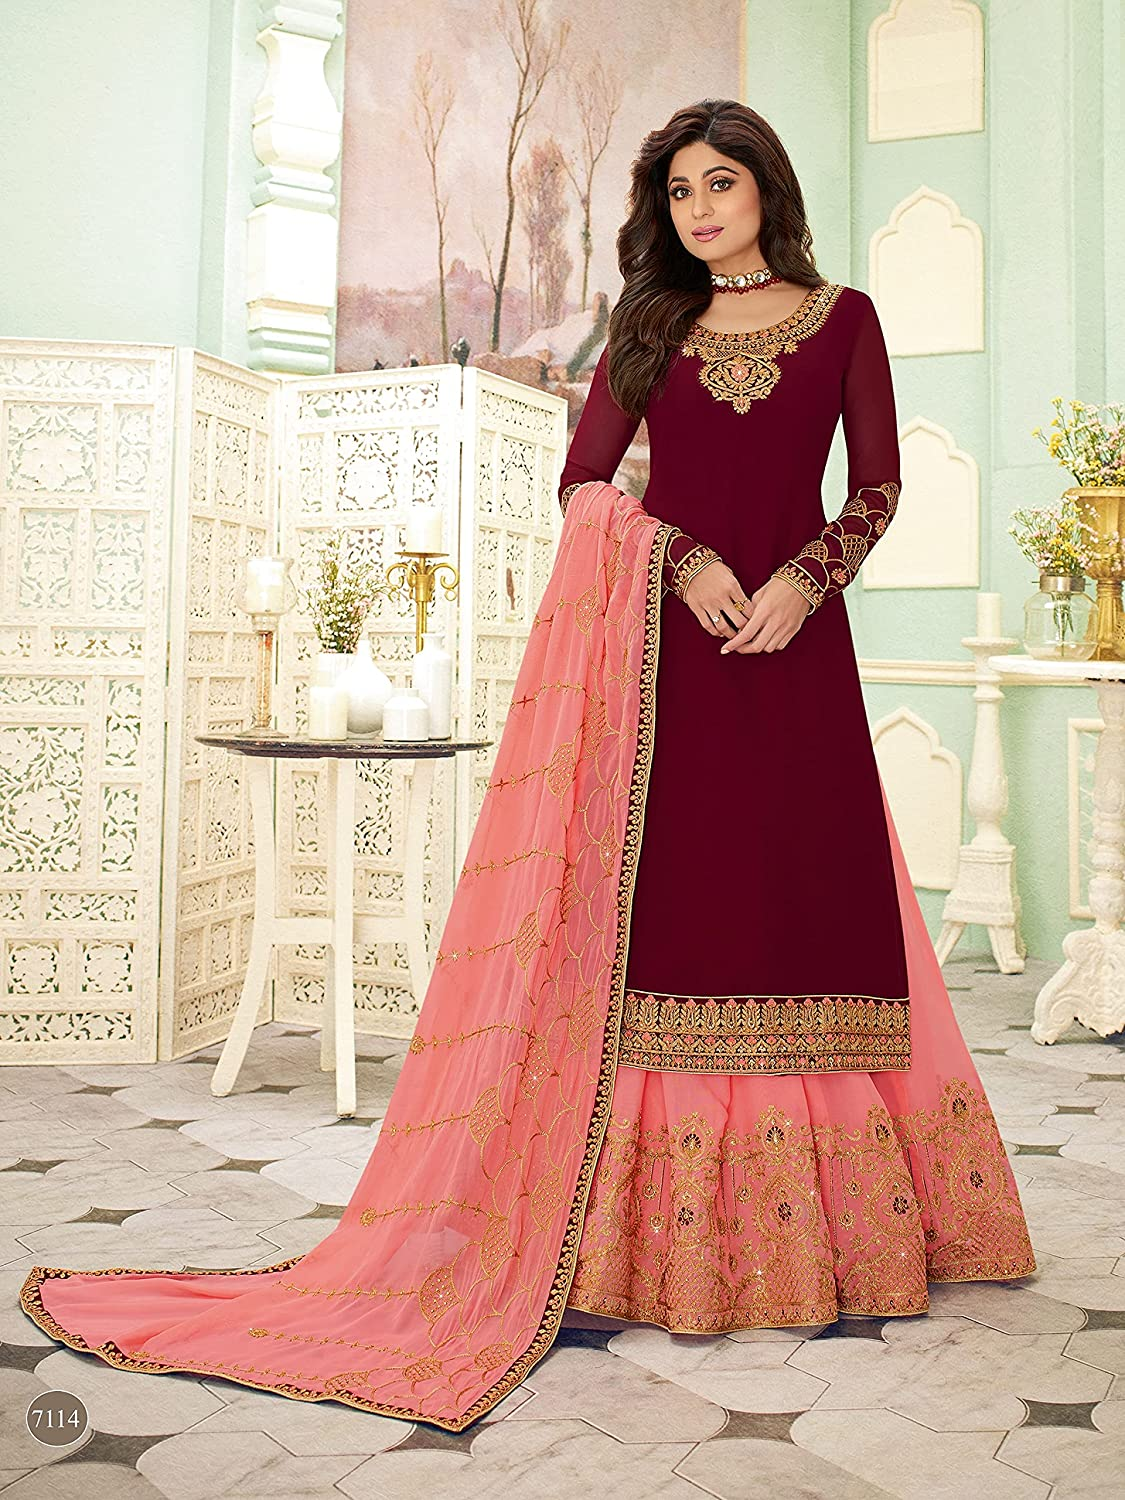 Readymade Indian/Pakistani Party/Ethnic Wear Georgette Straight Ghaghra/Lehenga Style Salwar Kameez Suit for Womens